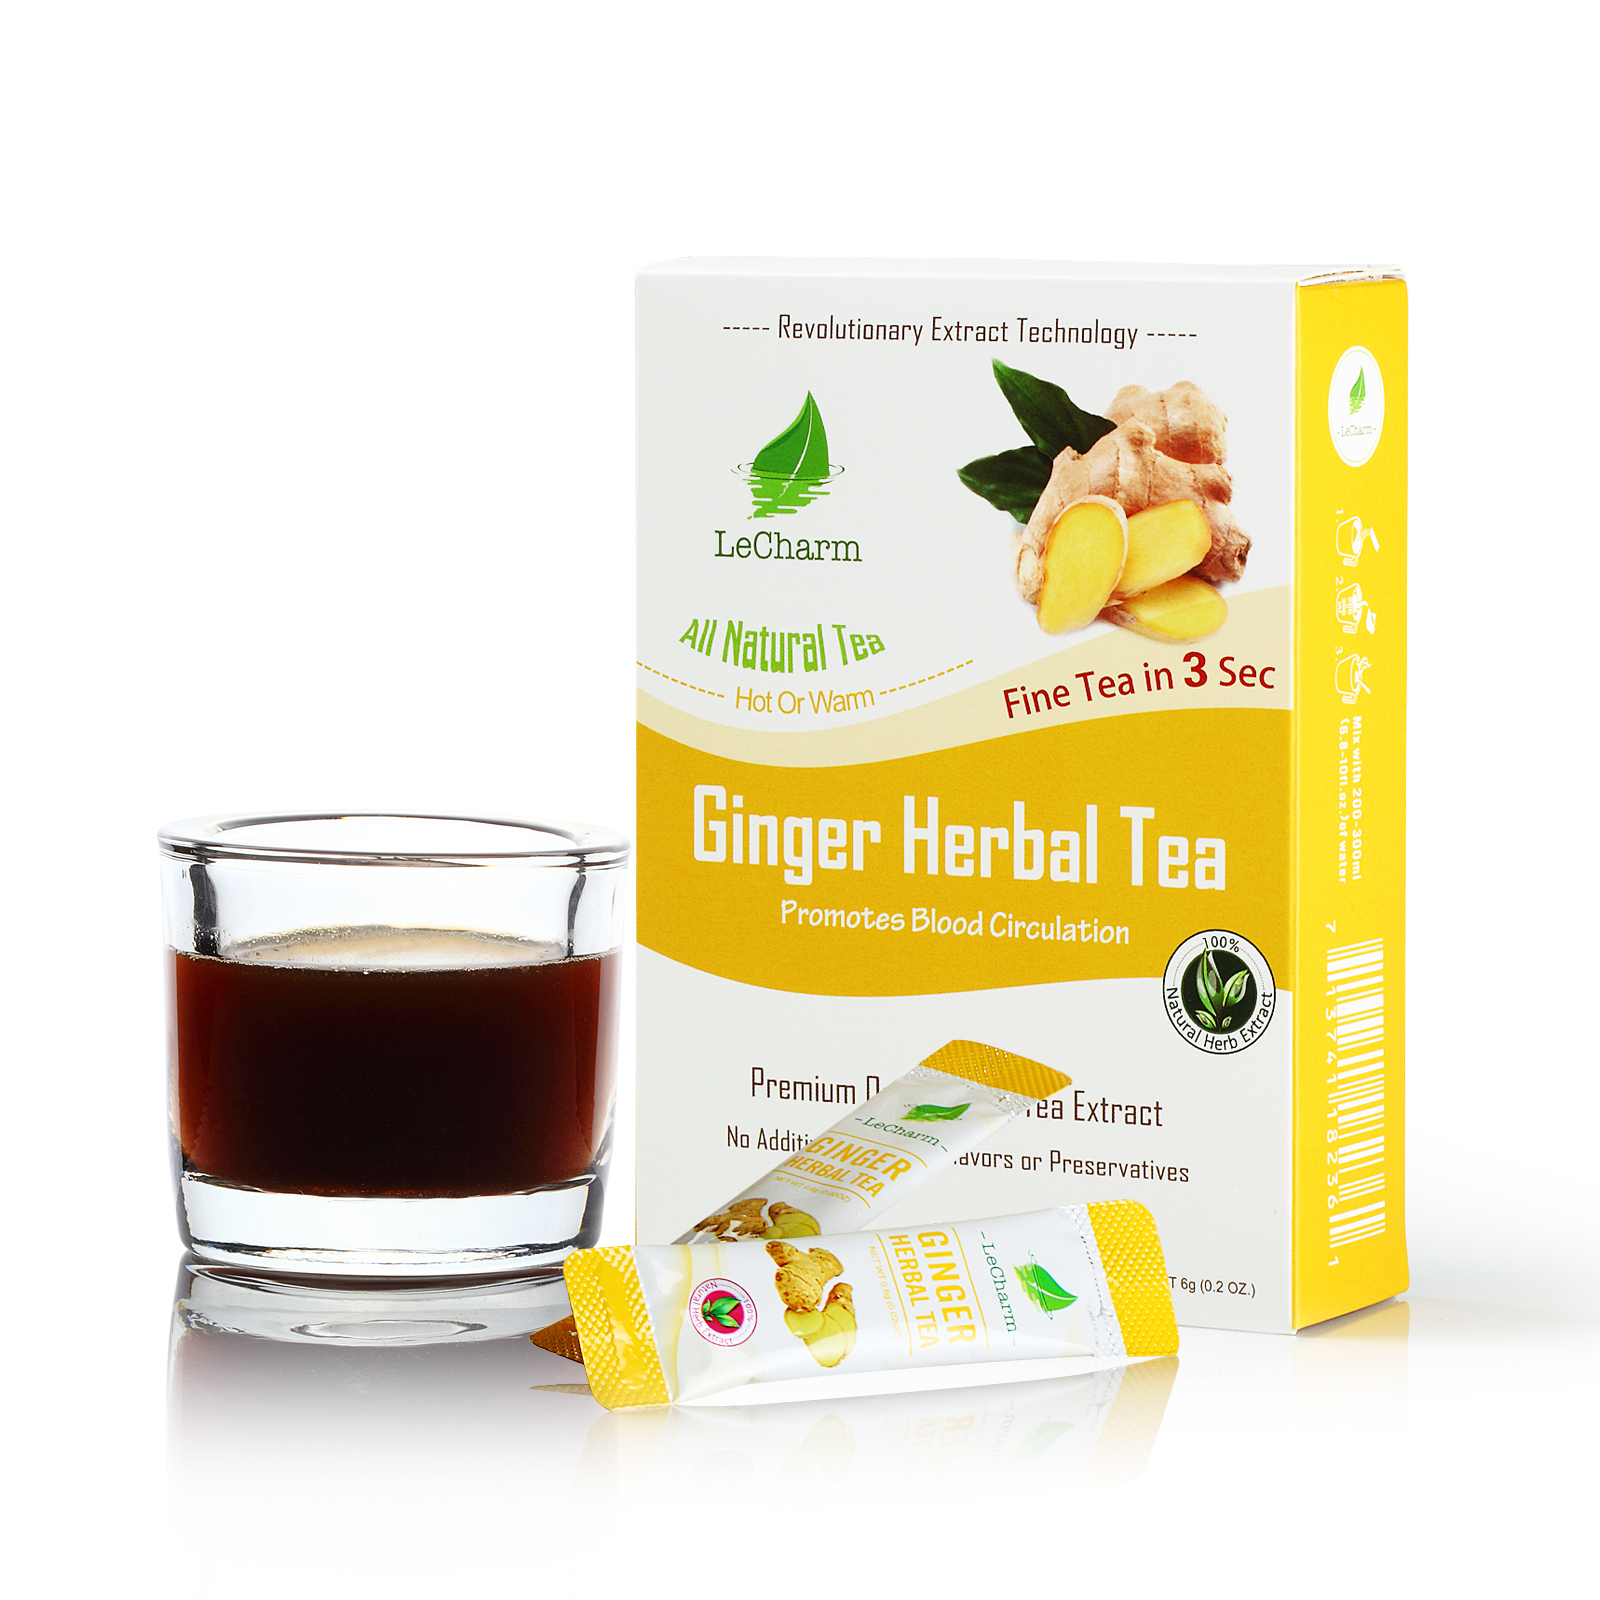 Ginger Herbal Black Tea Extract (10 Sachets)